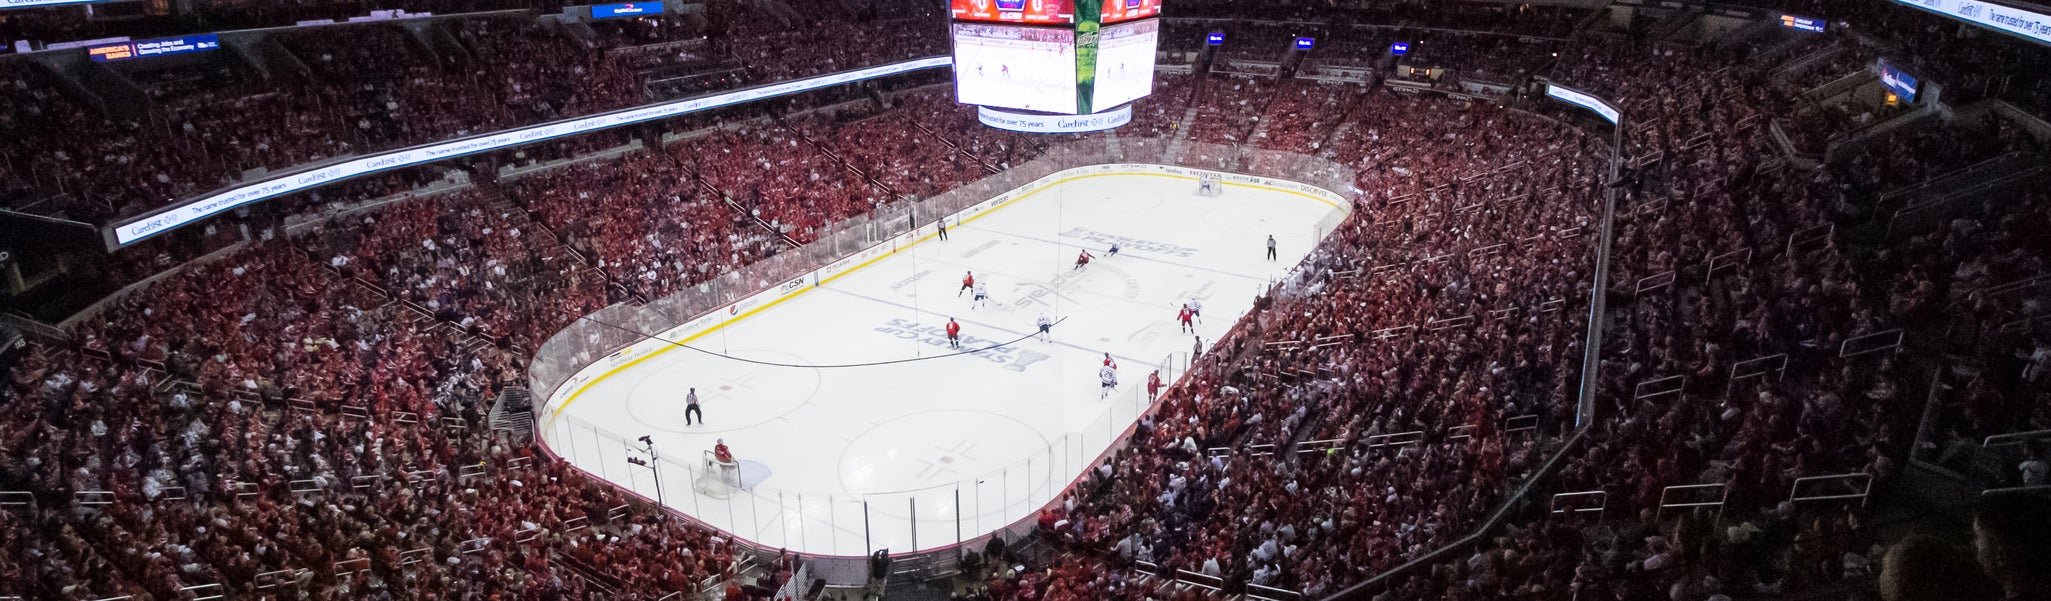 Seat view from Mezzanine End 429 at Capital One Arena